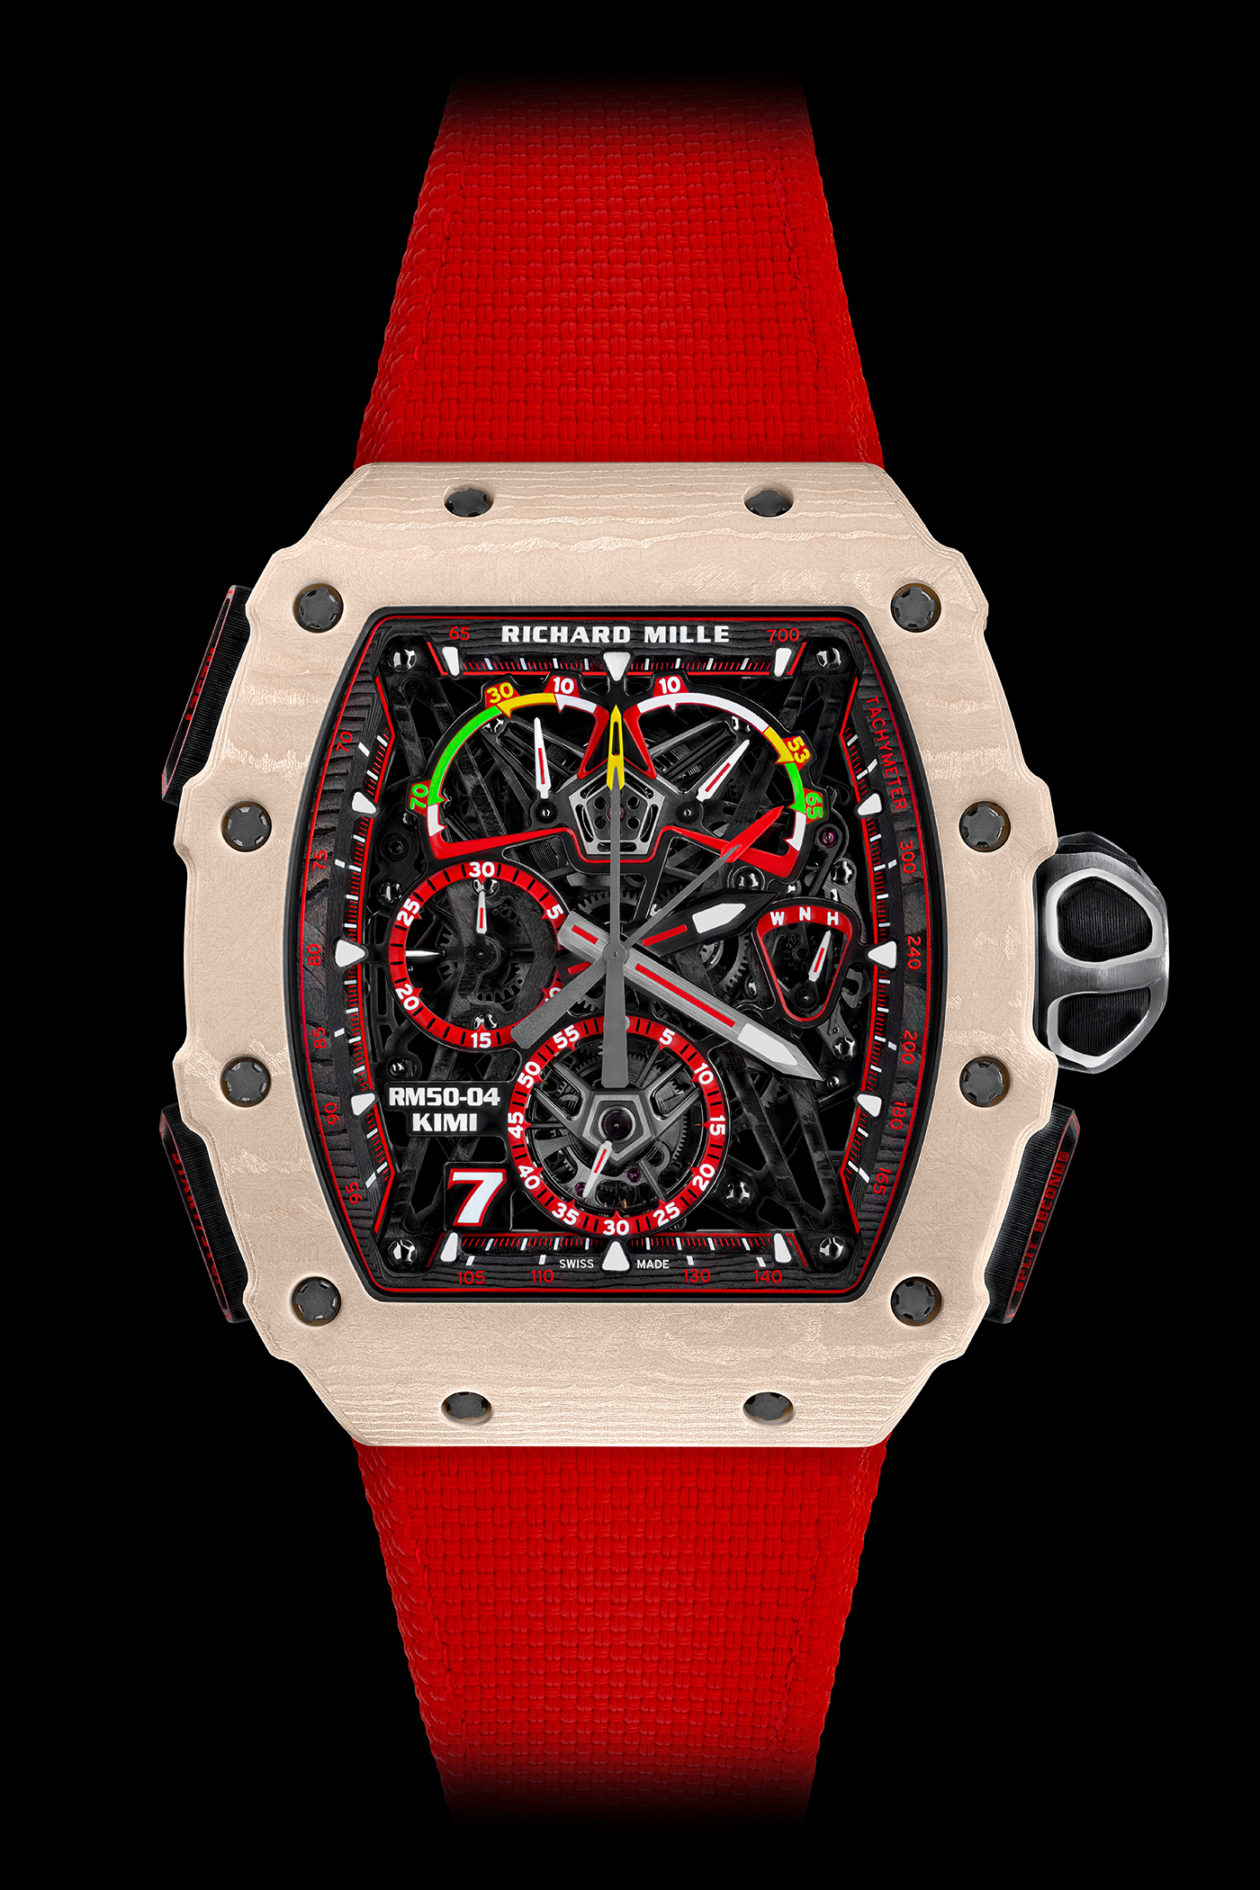 Richard Mille RM 50-04 Tourbillon Split-Seconds Chronograph Kimi Räikkönen